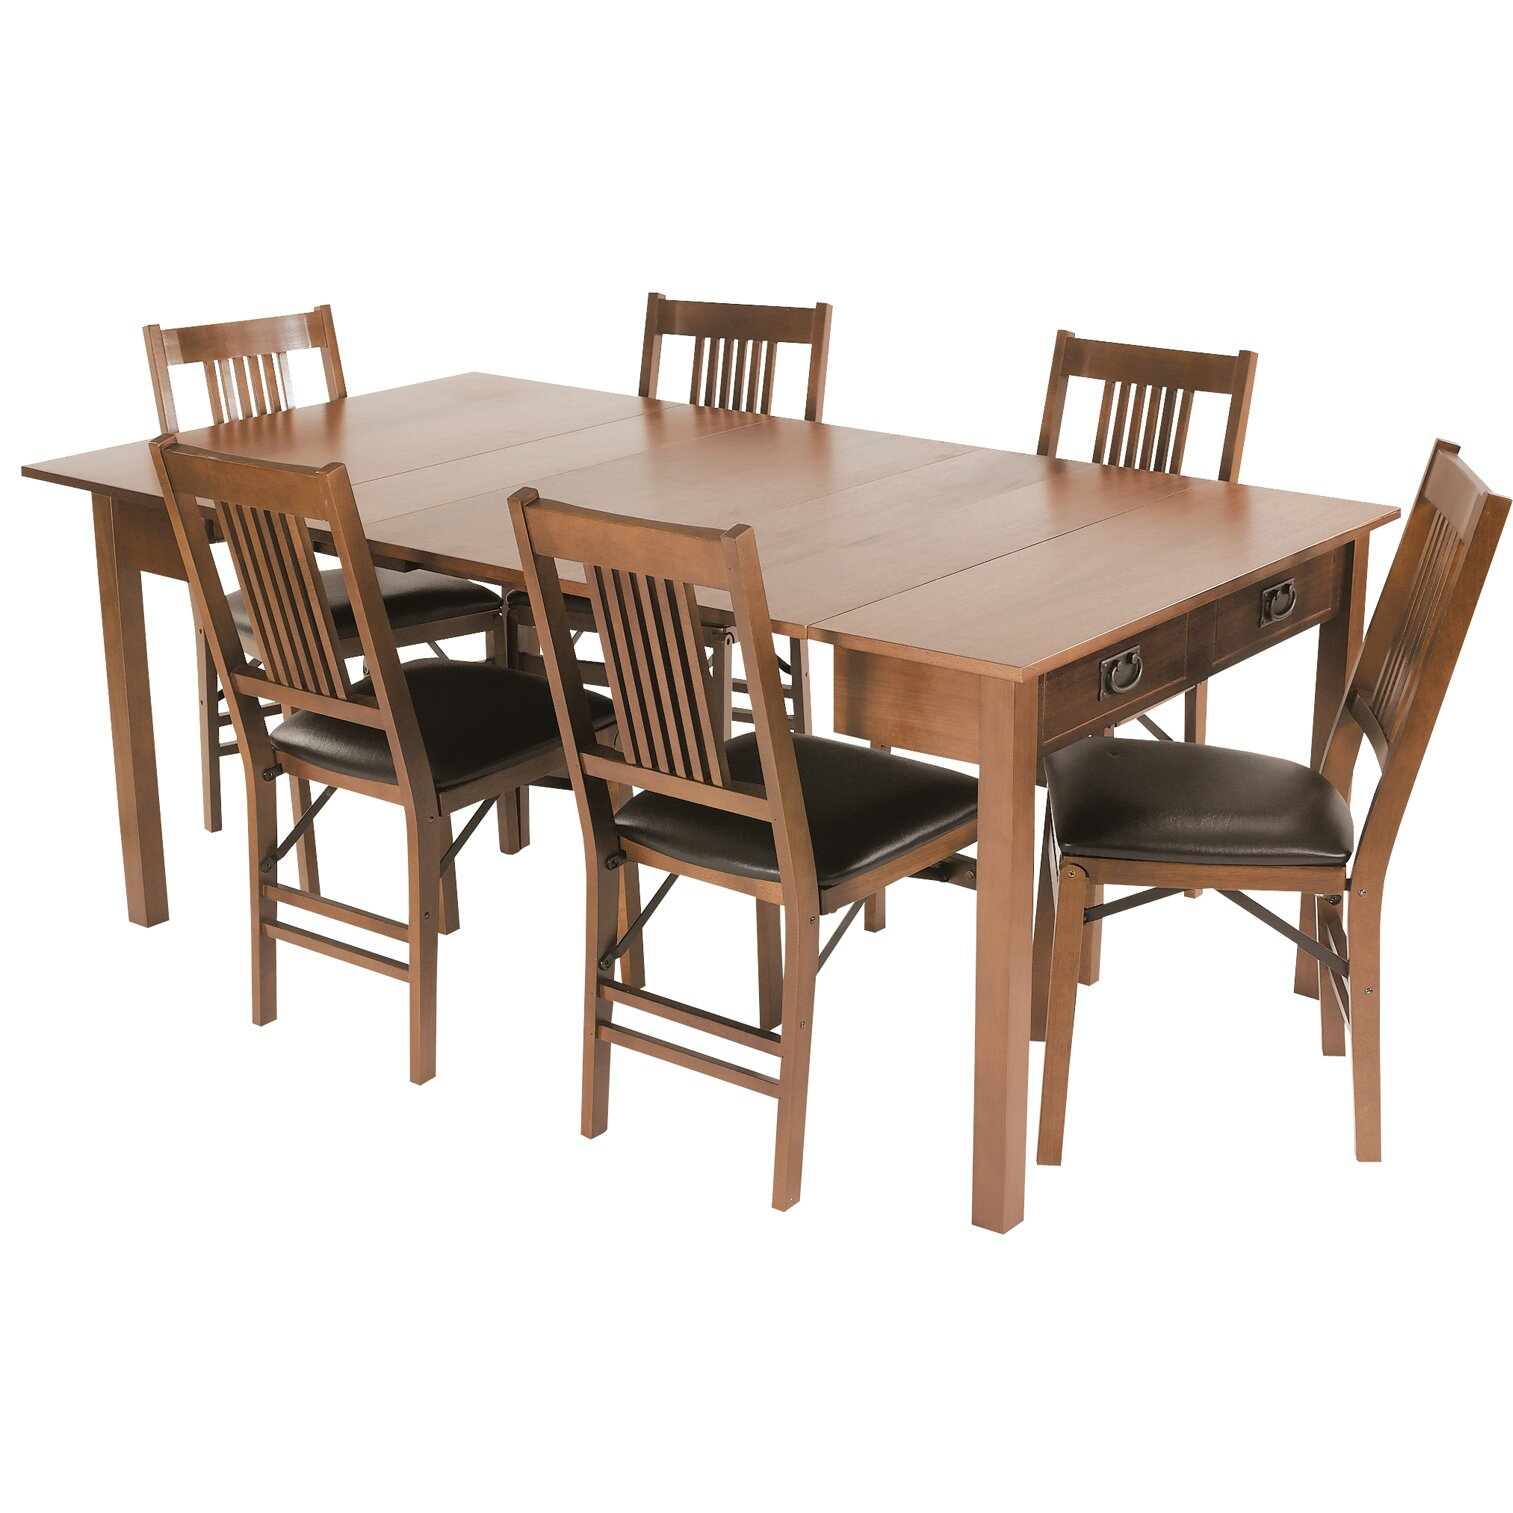 Stakmore Mission Style Expanding Dining Table & Reviews